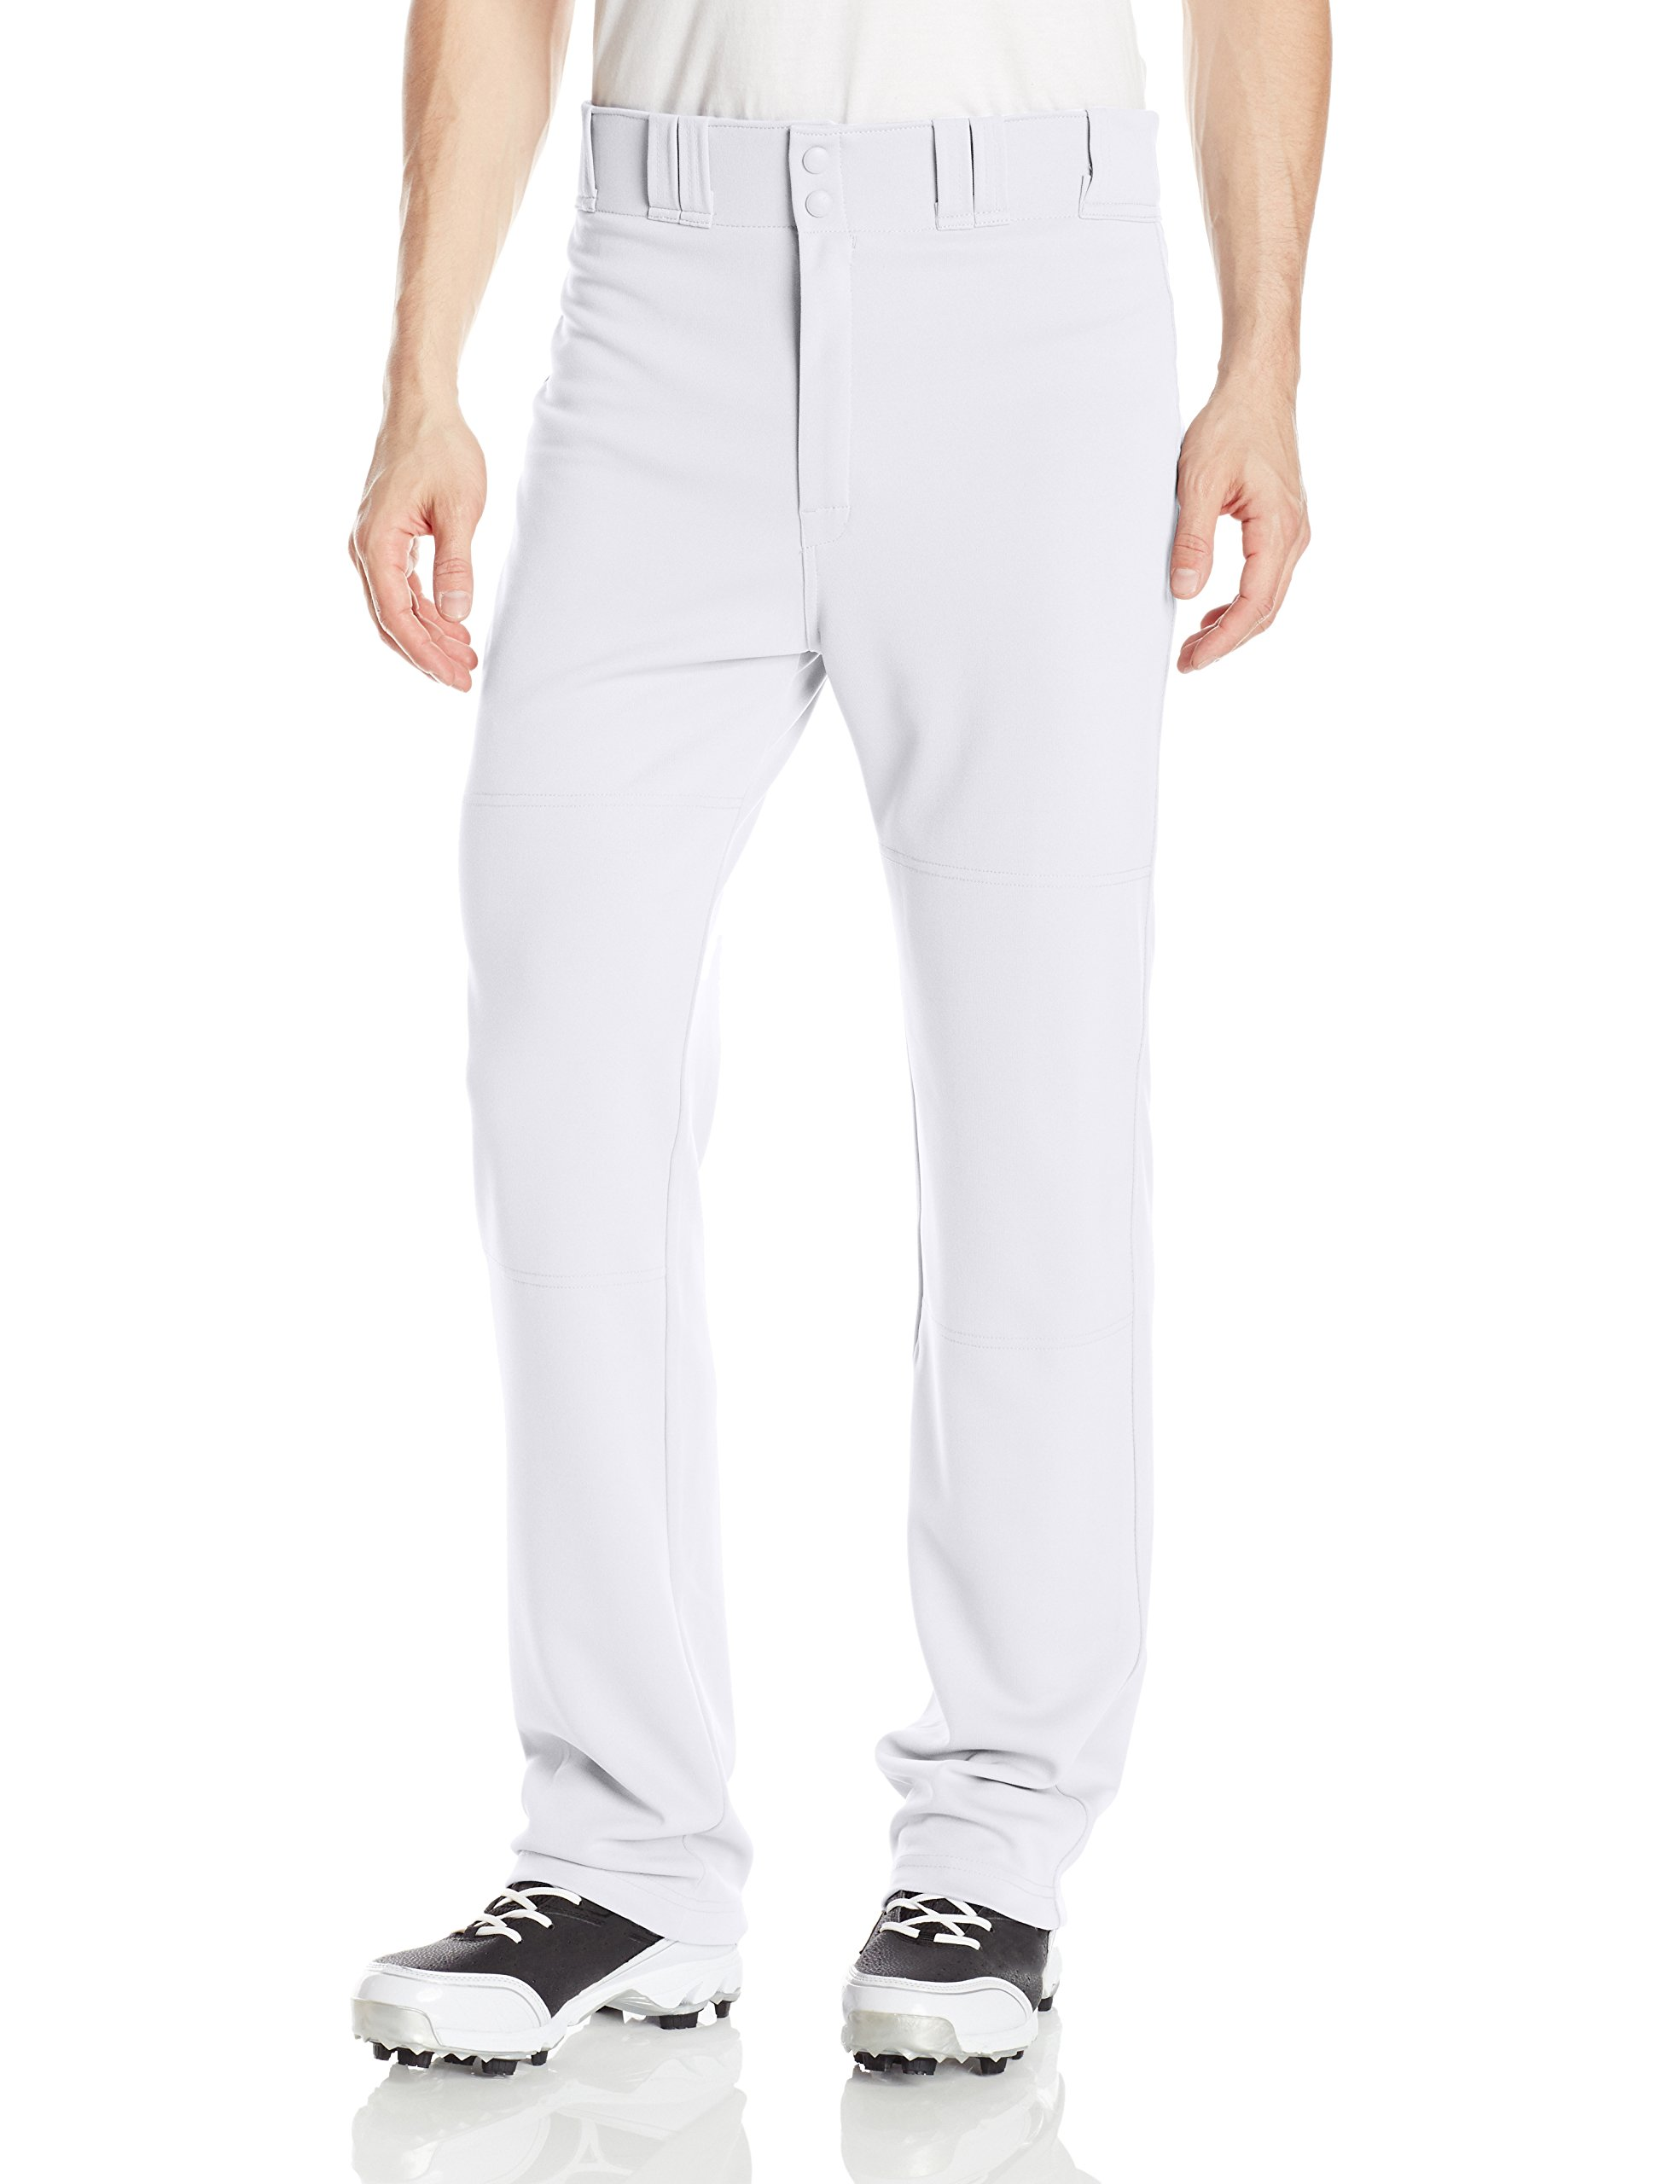 EASTON RIVAL 2 Baseball Softball Pant | Adult | X